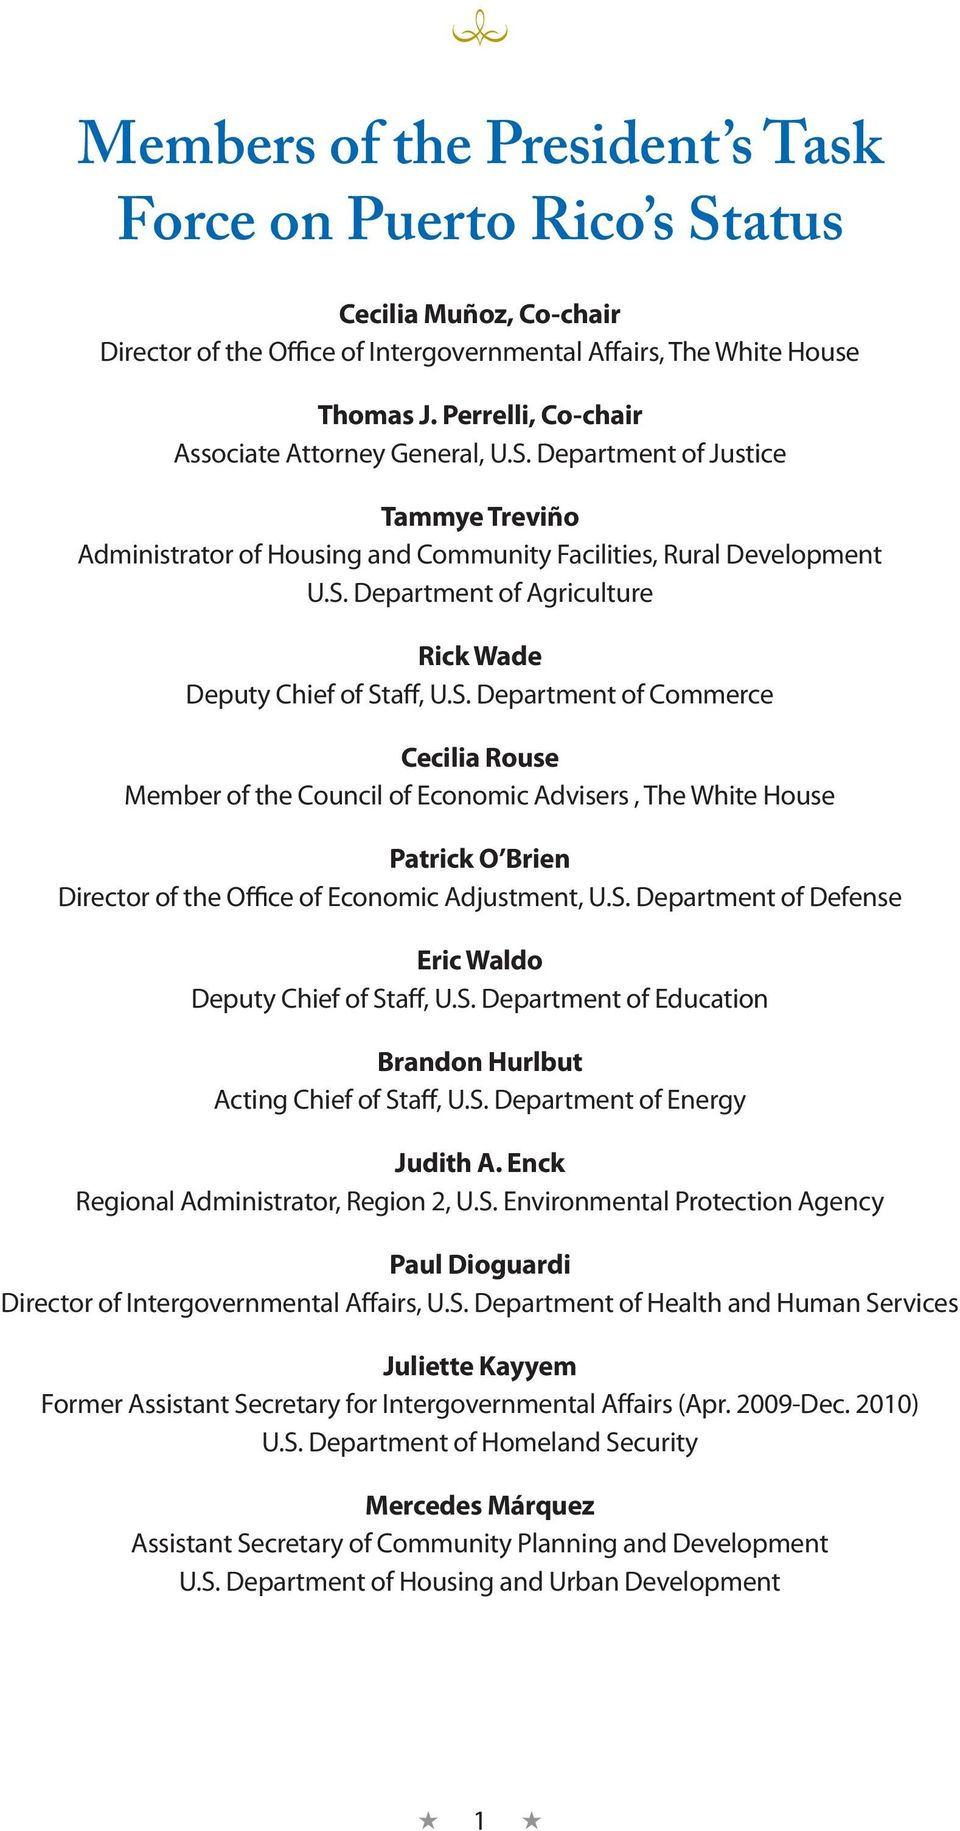 S. Department of Commerce Cecilia Rouse Member of the Council of Economic Advisers, The White House Patrick O Brien Director of the Office of Economic Adjustment, U.S. Department of Defense Eric Waldo Deputy Chief of Staff, U.